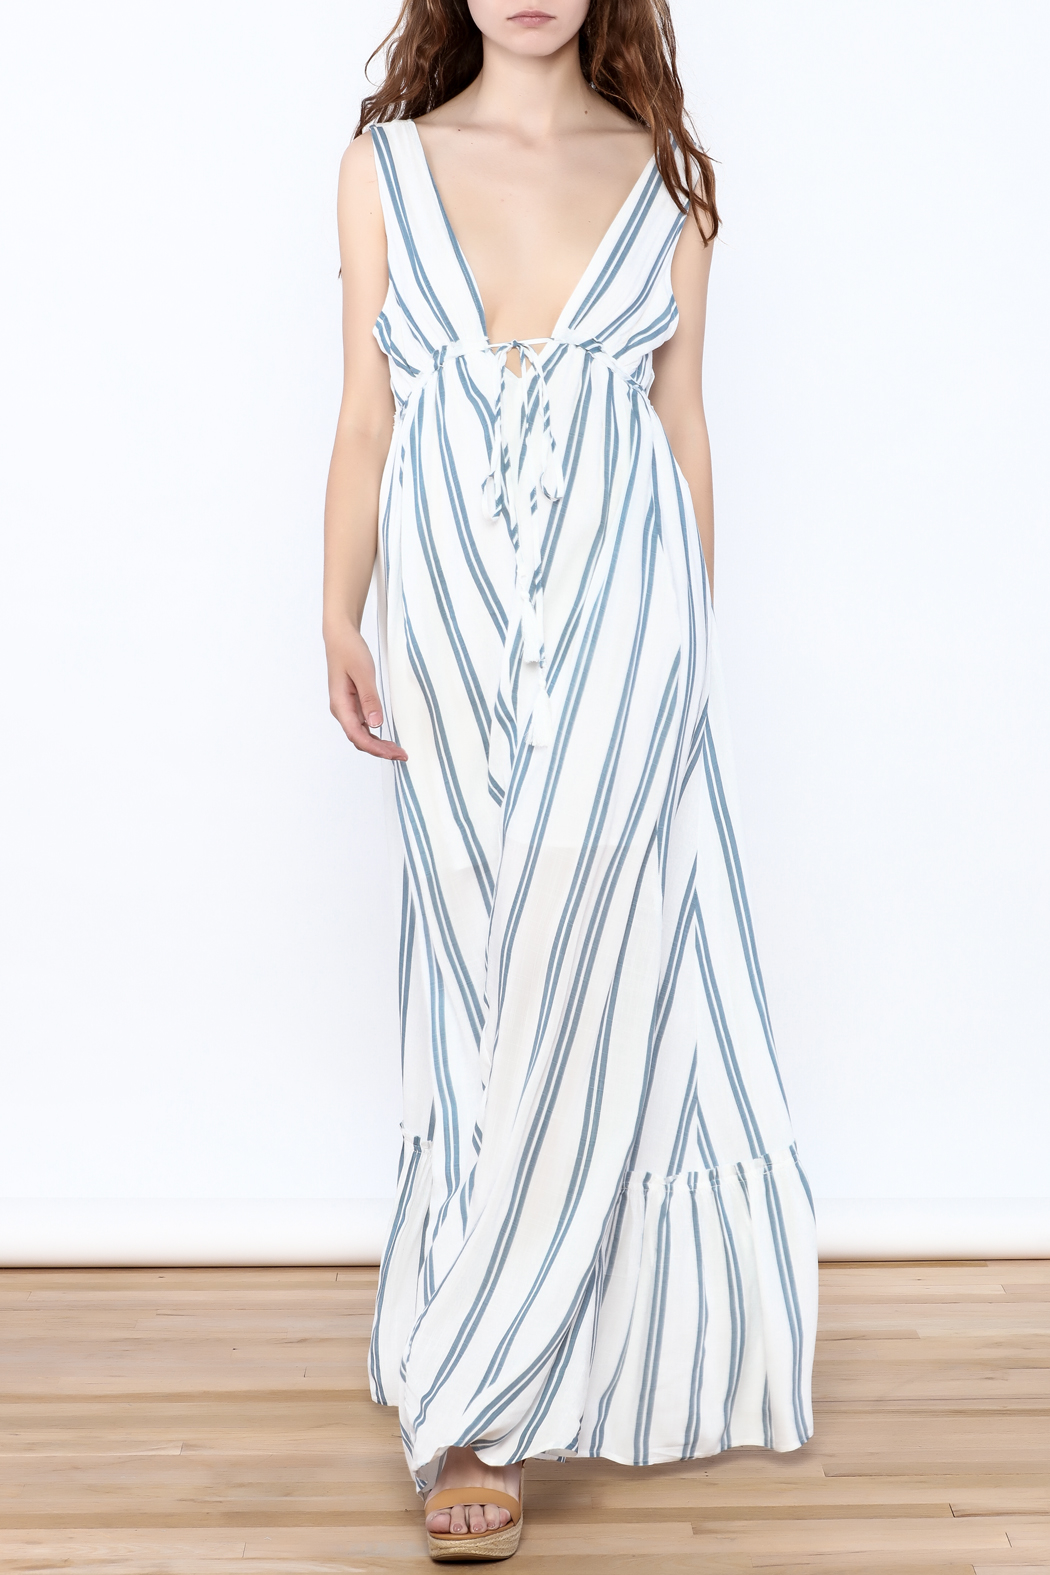 Hommage Stripe Flowy Maxi Dress - Main Image